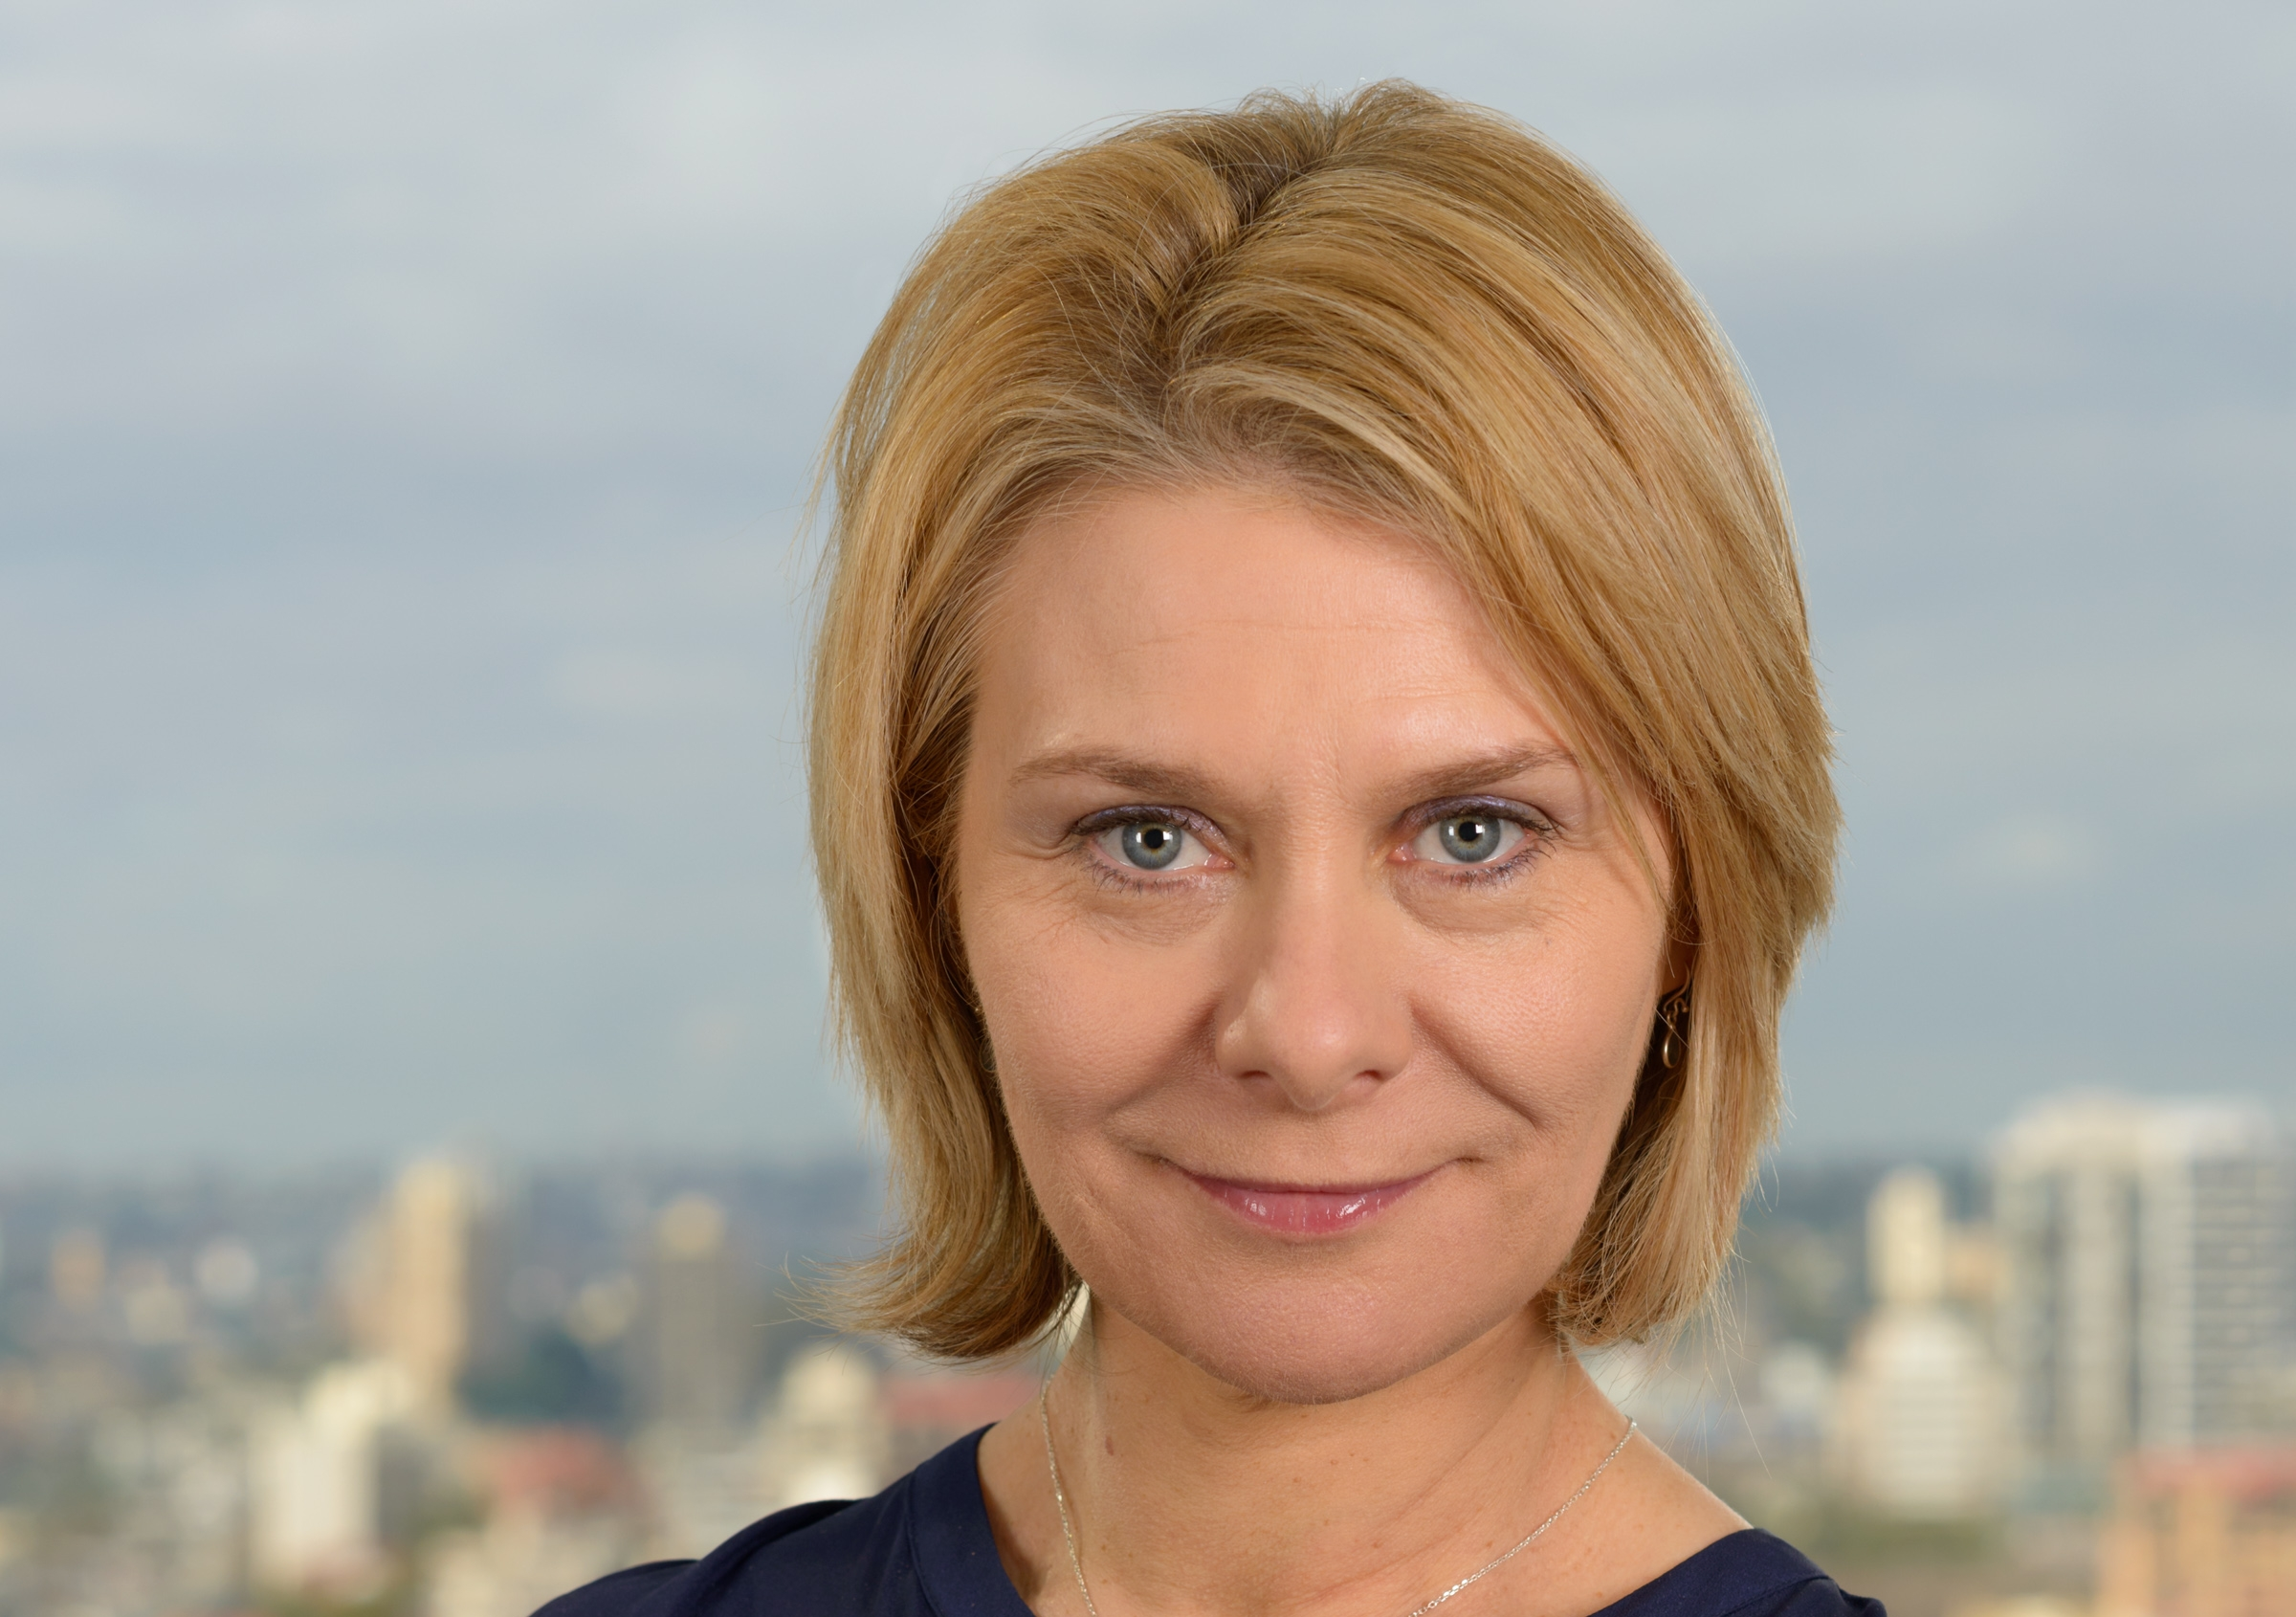 NSW first female Crown Solicitor - UNSW alumna Lea Armstrong